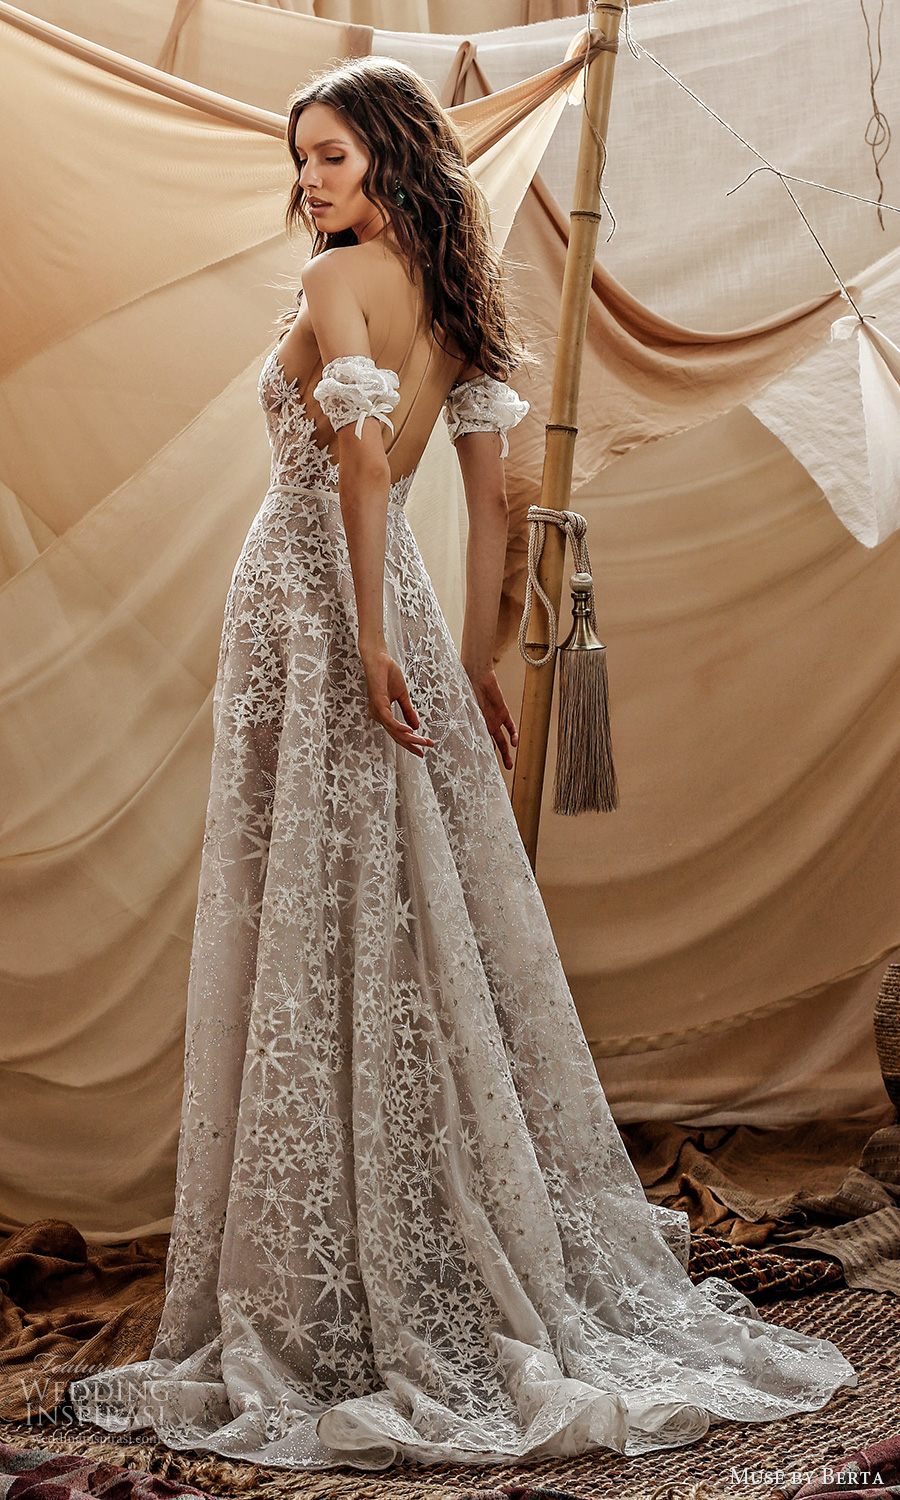 muse by berta spring 2021 bridal detached short puff sleeves plunging sweetheart neckline fully embellished a line ball gown wedding dress chapel train (4) bv